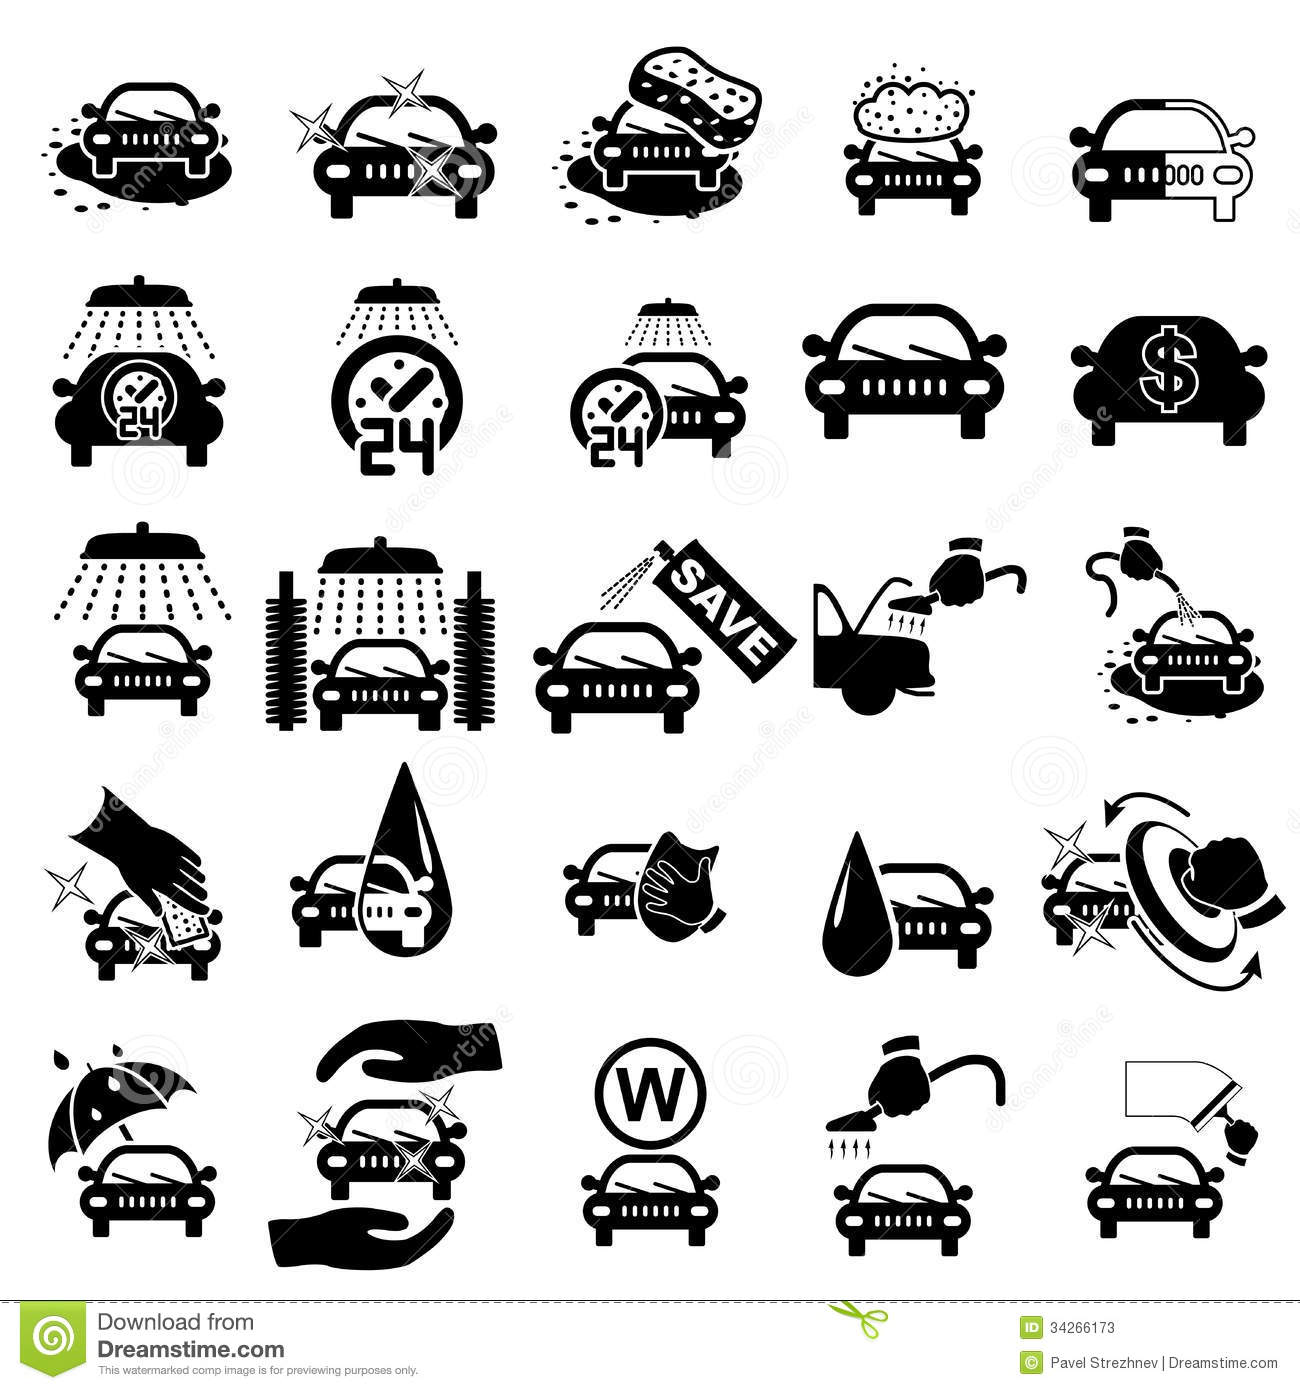 14 car wash vector art images cartoon car wash free car wash clip art and vector car wash. Black Bedroom Furniture Sets. Home Design Ideas